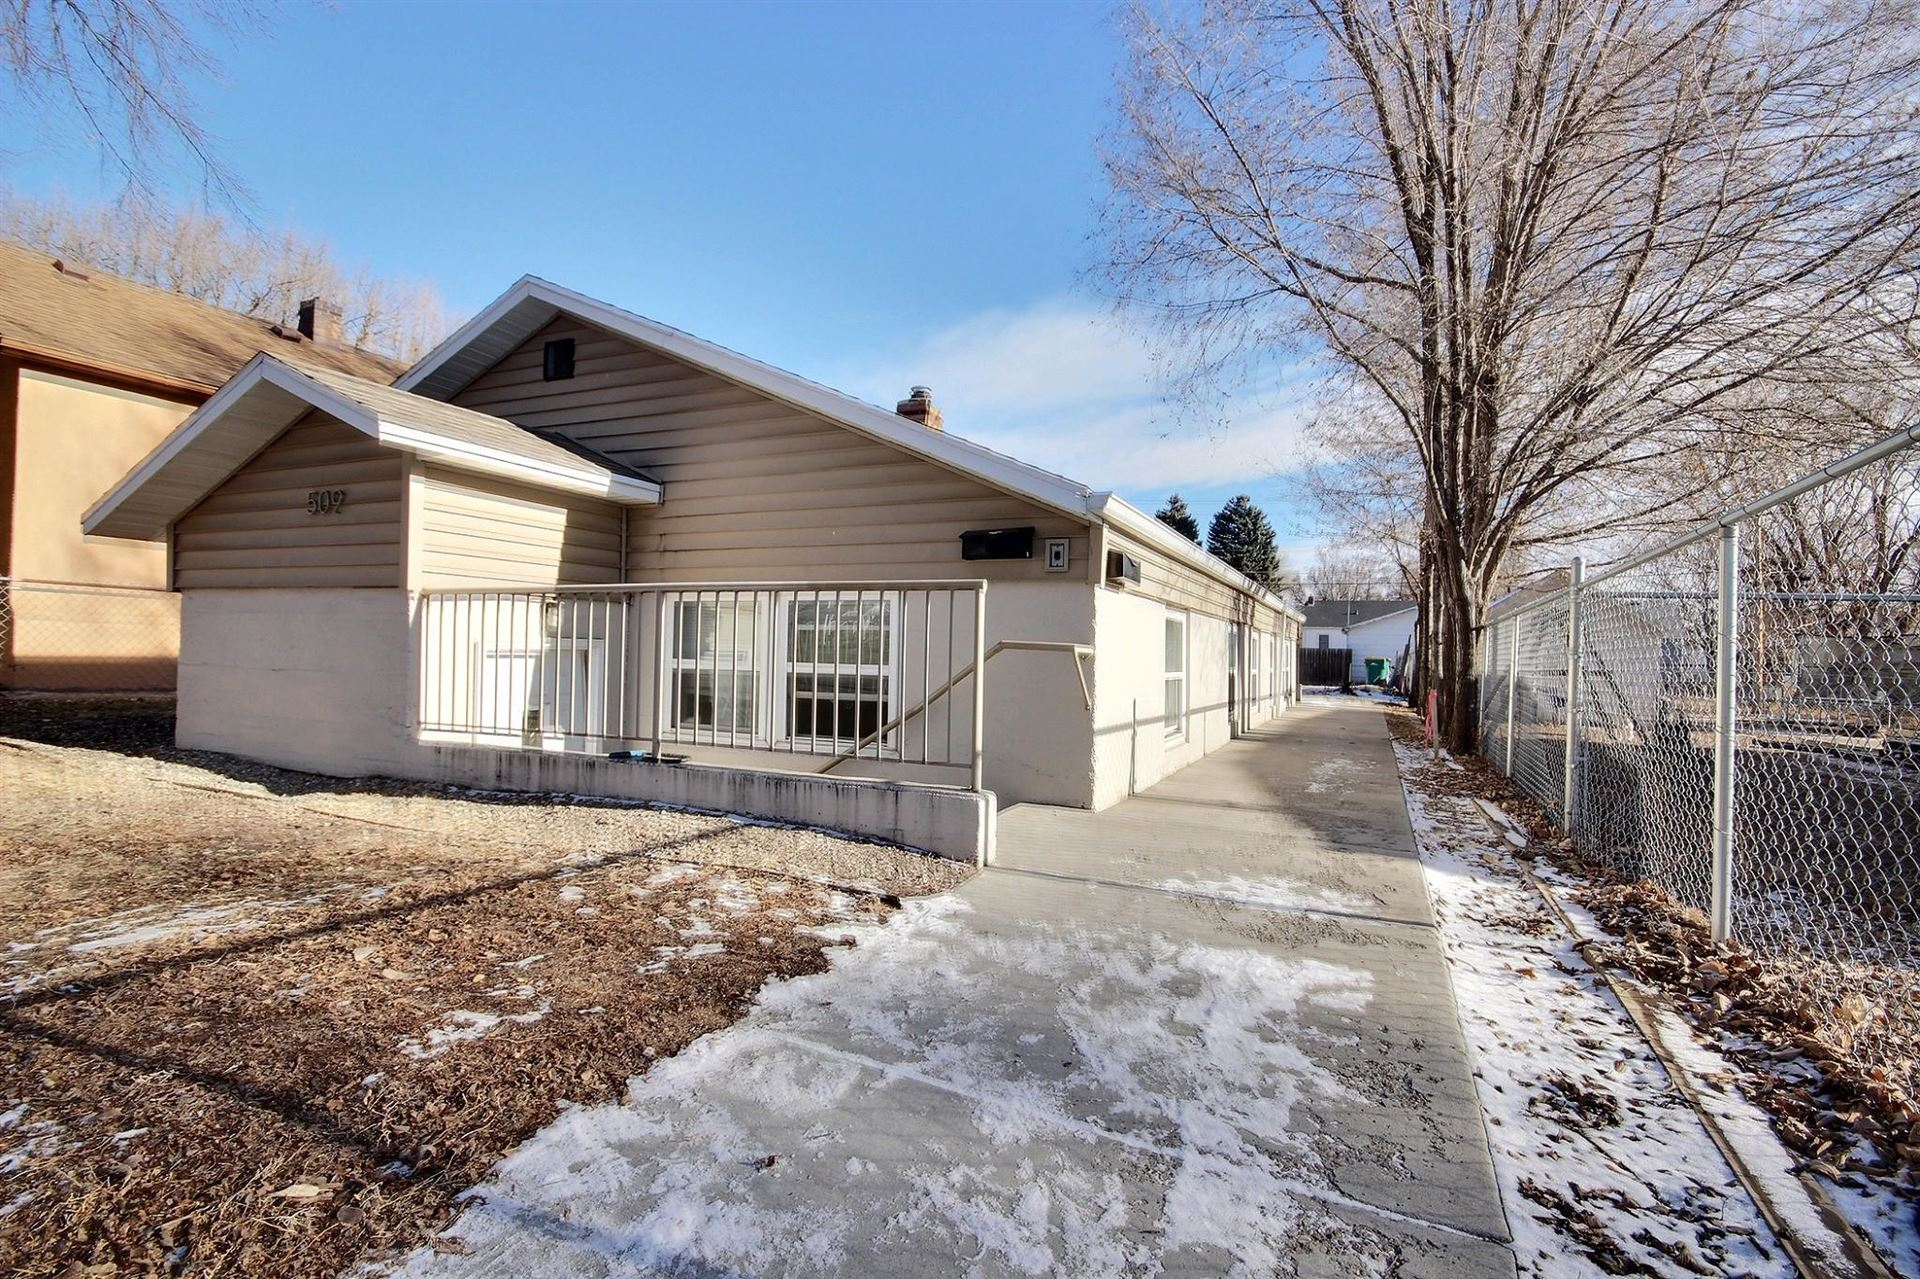 509 N 15th Street, Bismarck, ND 58501 - #: 409239